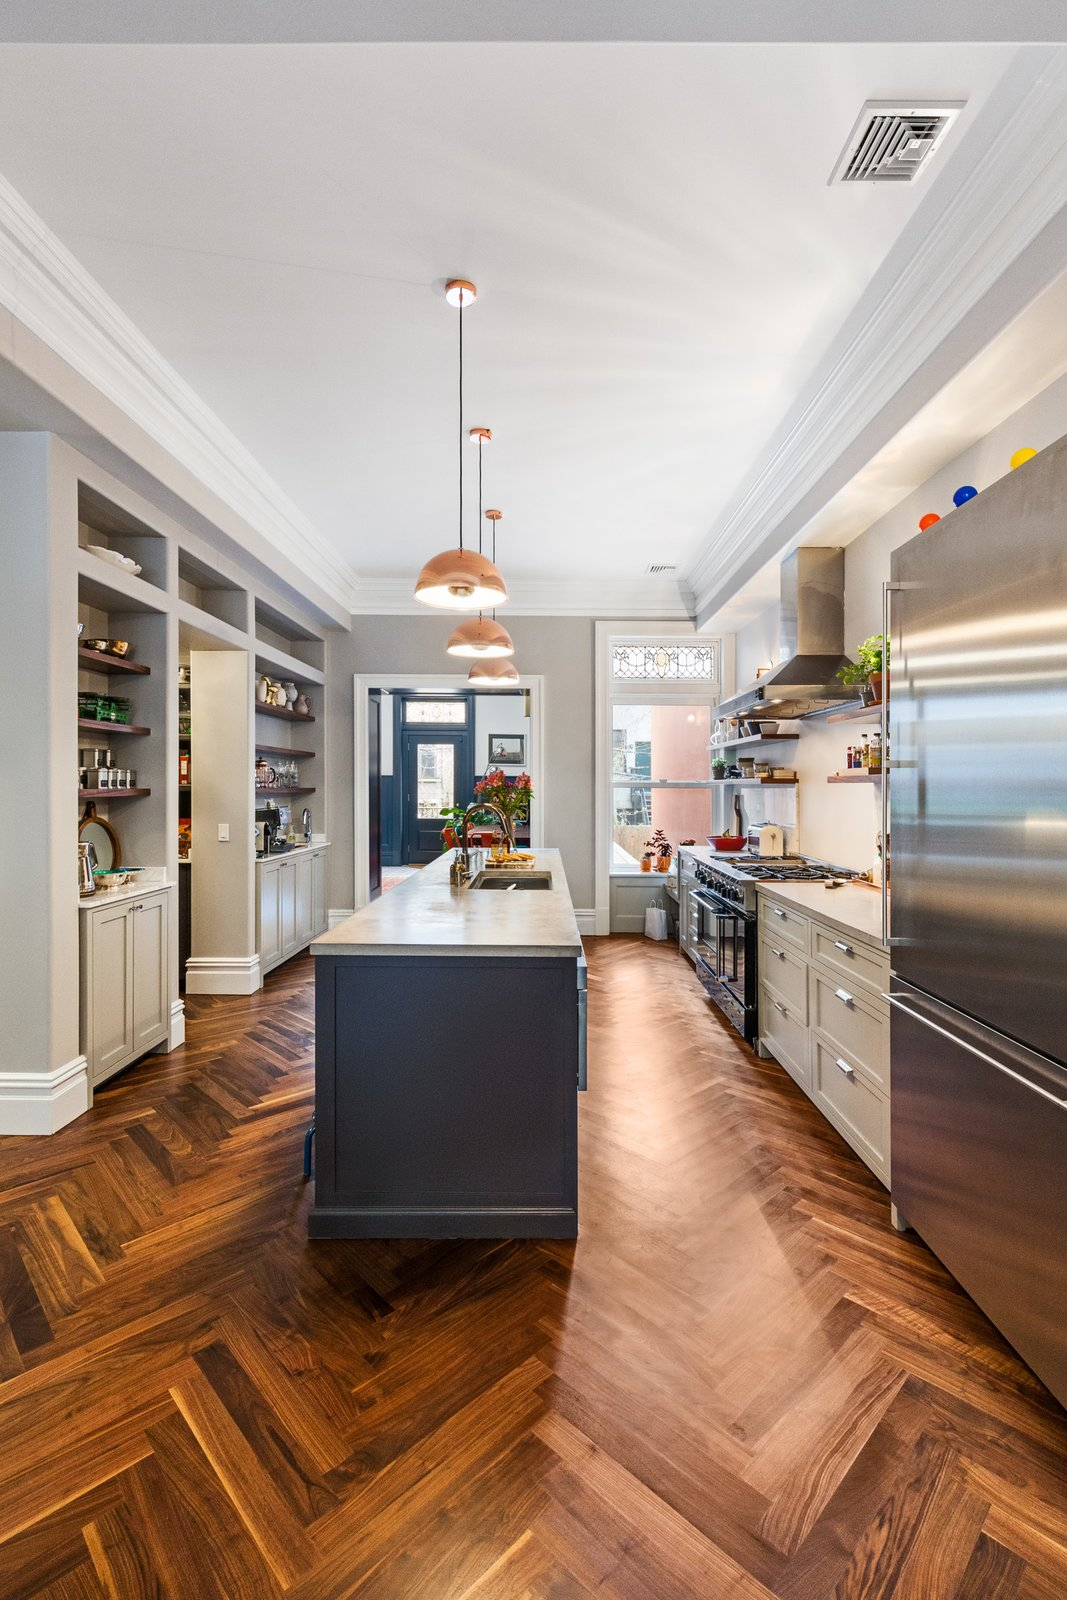 Kitchen and Medium Hardwood Floor  A LONG TOWNHOUSE SETS THE RIGHT FLOW FOR MODERN LIVING (PART 2, SWEETEN project) by Photo by Pixy